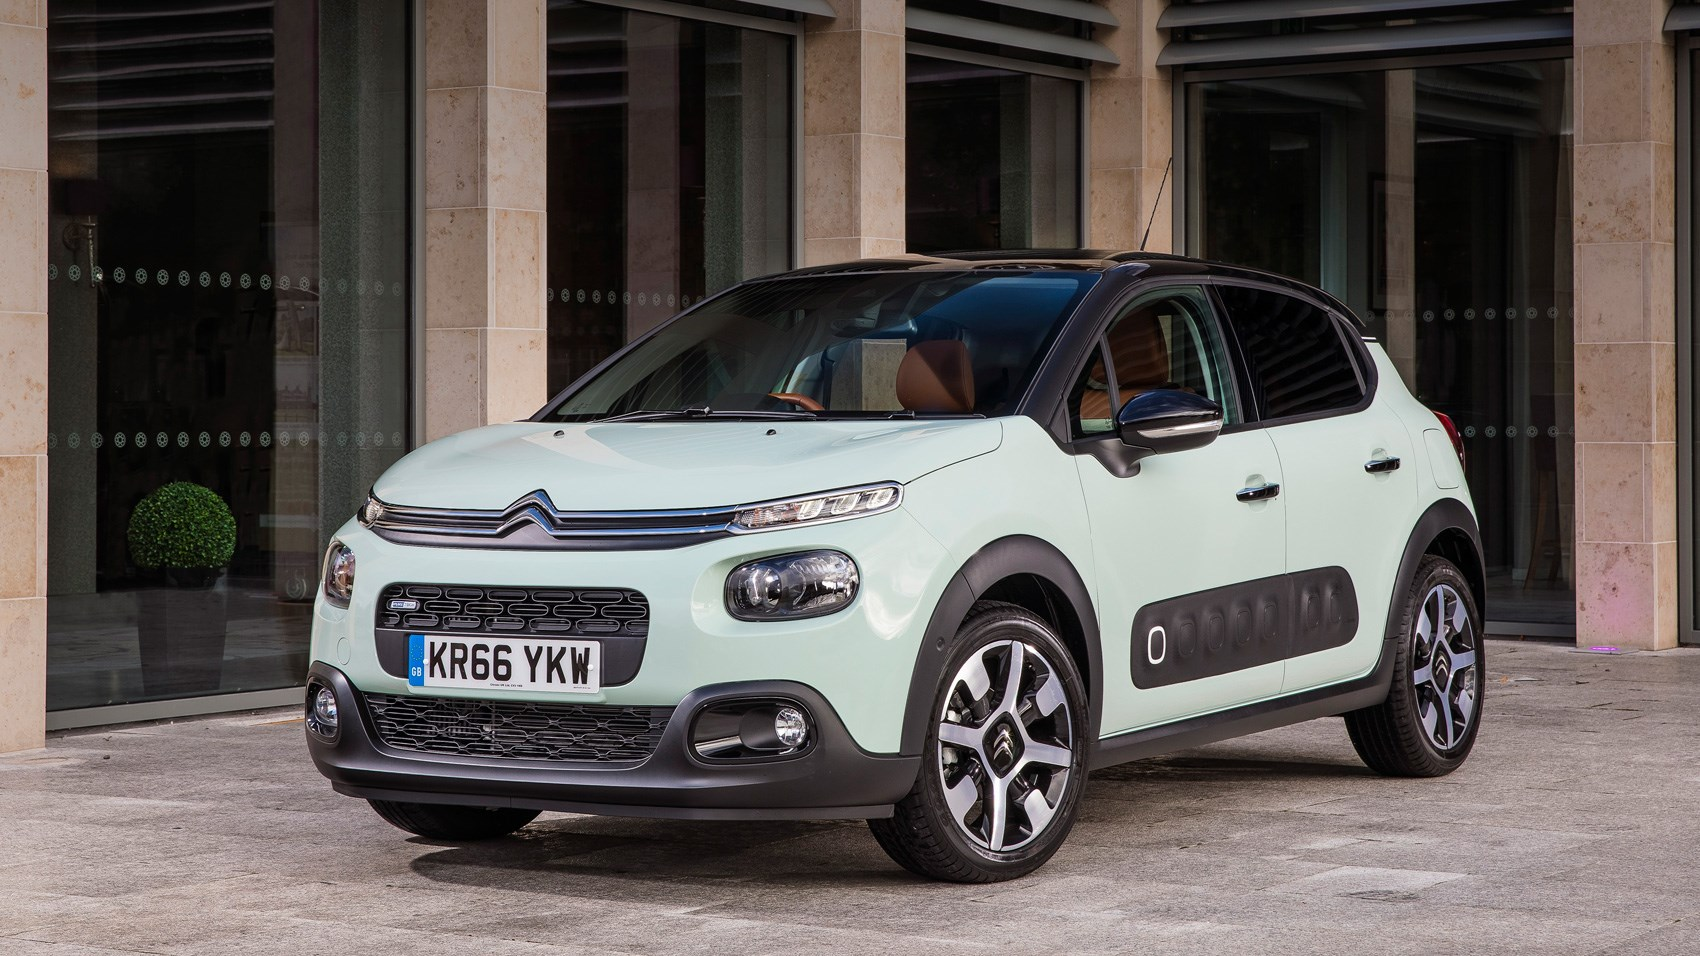 citroen c3 bluehdi 100 s s flair 2017 review car magazine. Black Bedroom Furniture Sets. Home Design Ideas